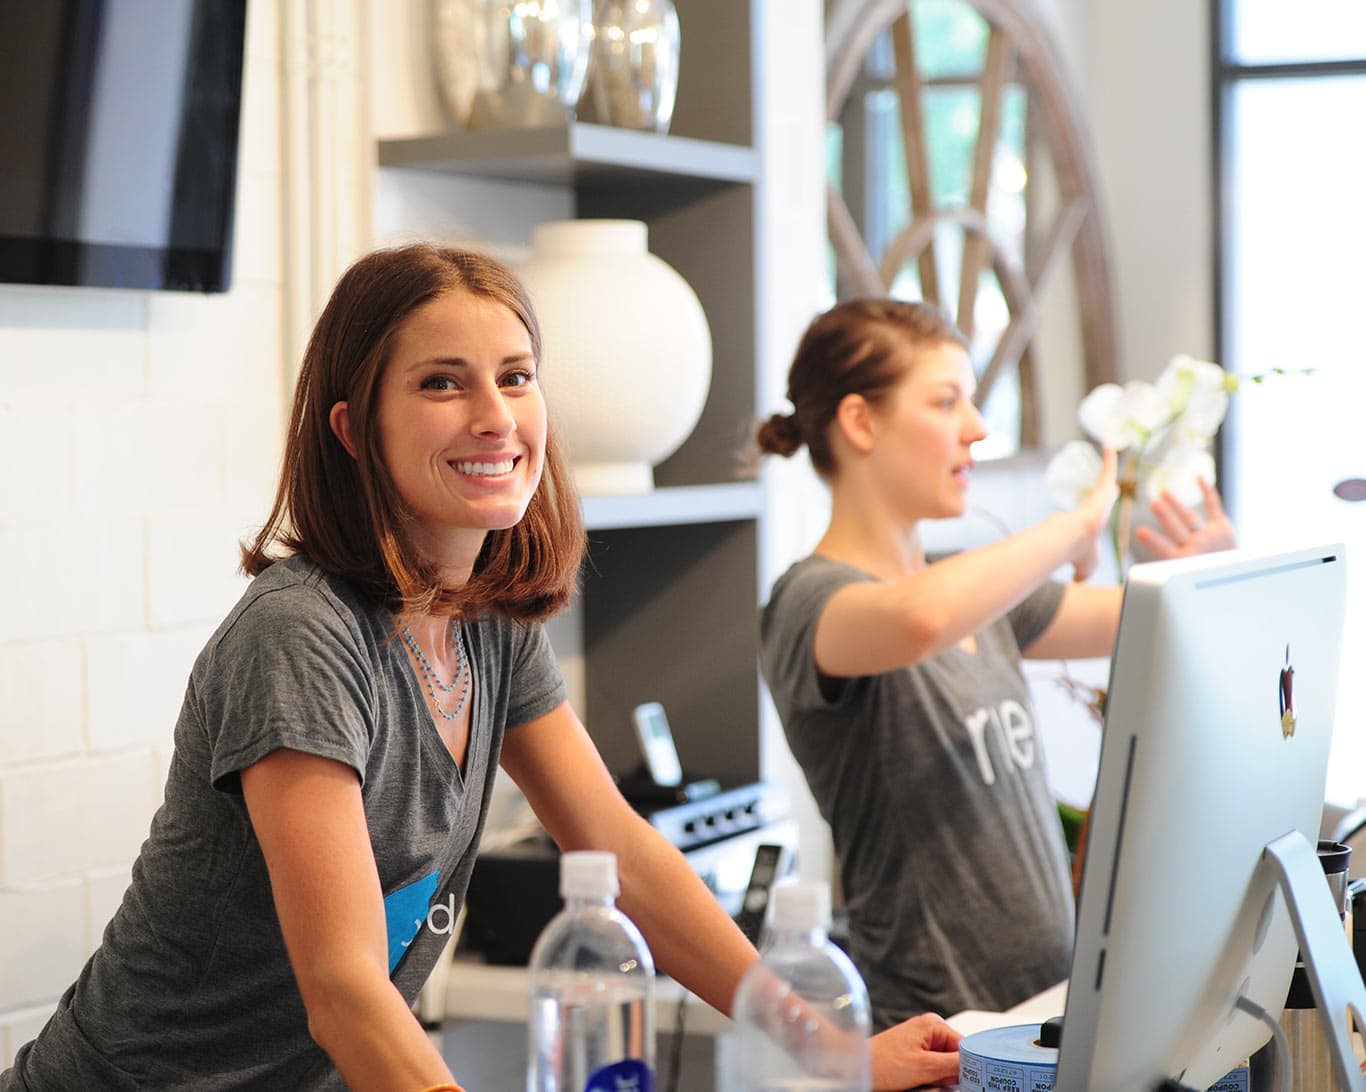 NOW Hiring Instructors, Experience Experts, & Studio Crew at DEFINE body & mind